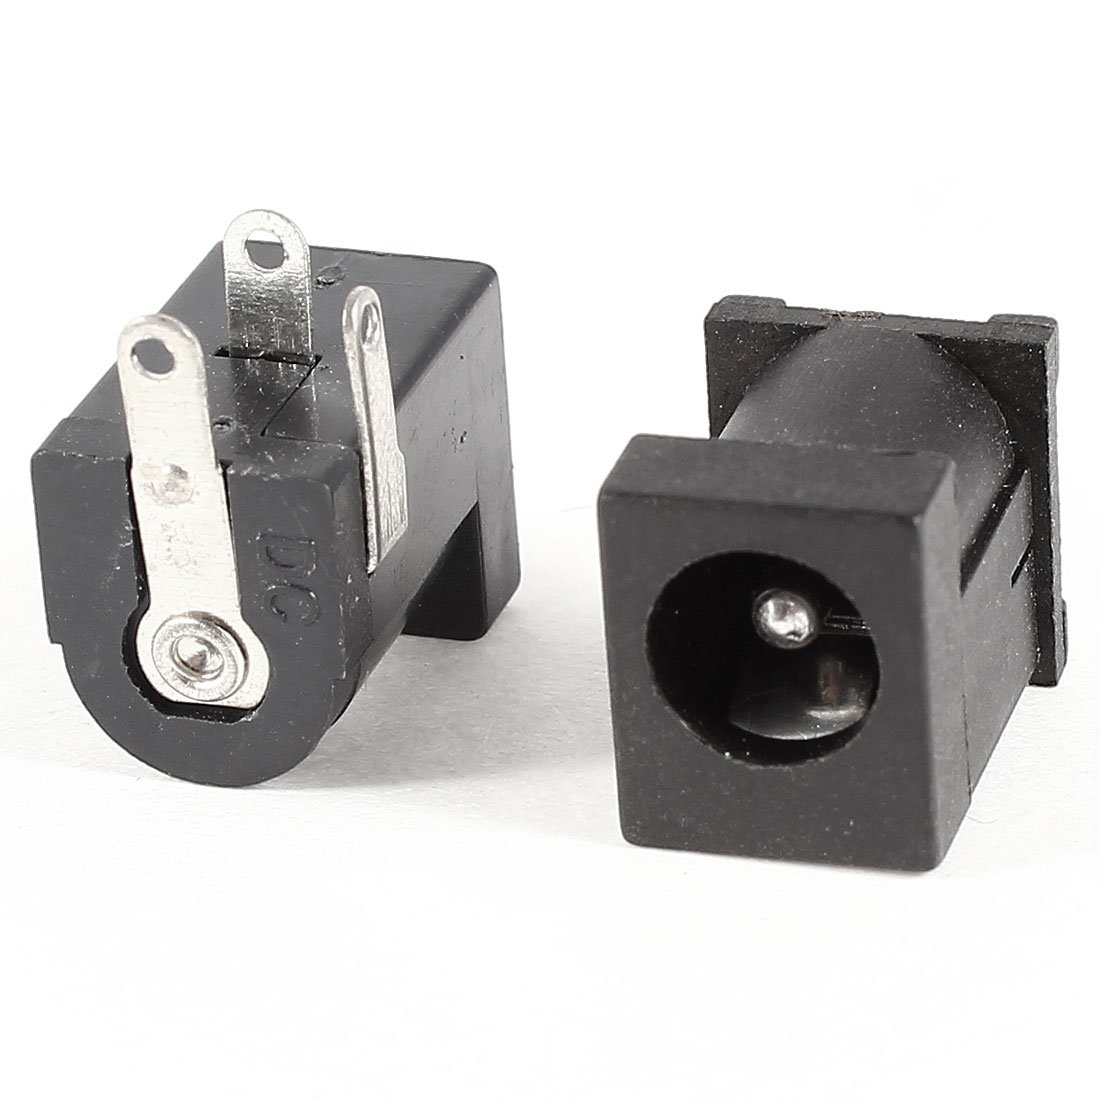 2 Pcs Black 3 Pin 2.1mmx5.5mm DC Power Jack Socket PCB Mount Connector uxcell a14011600ux0788